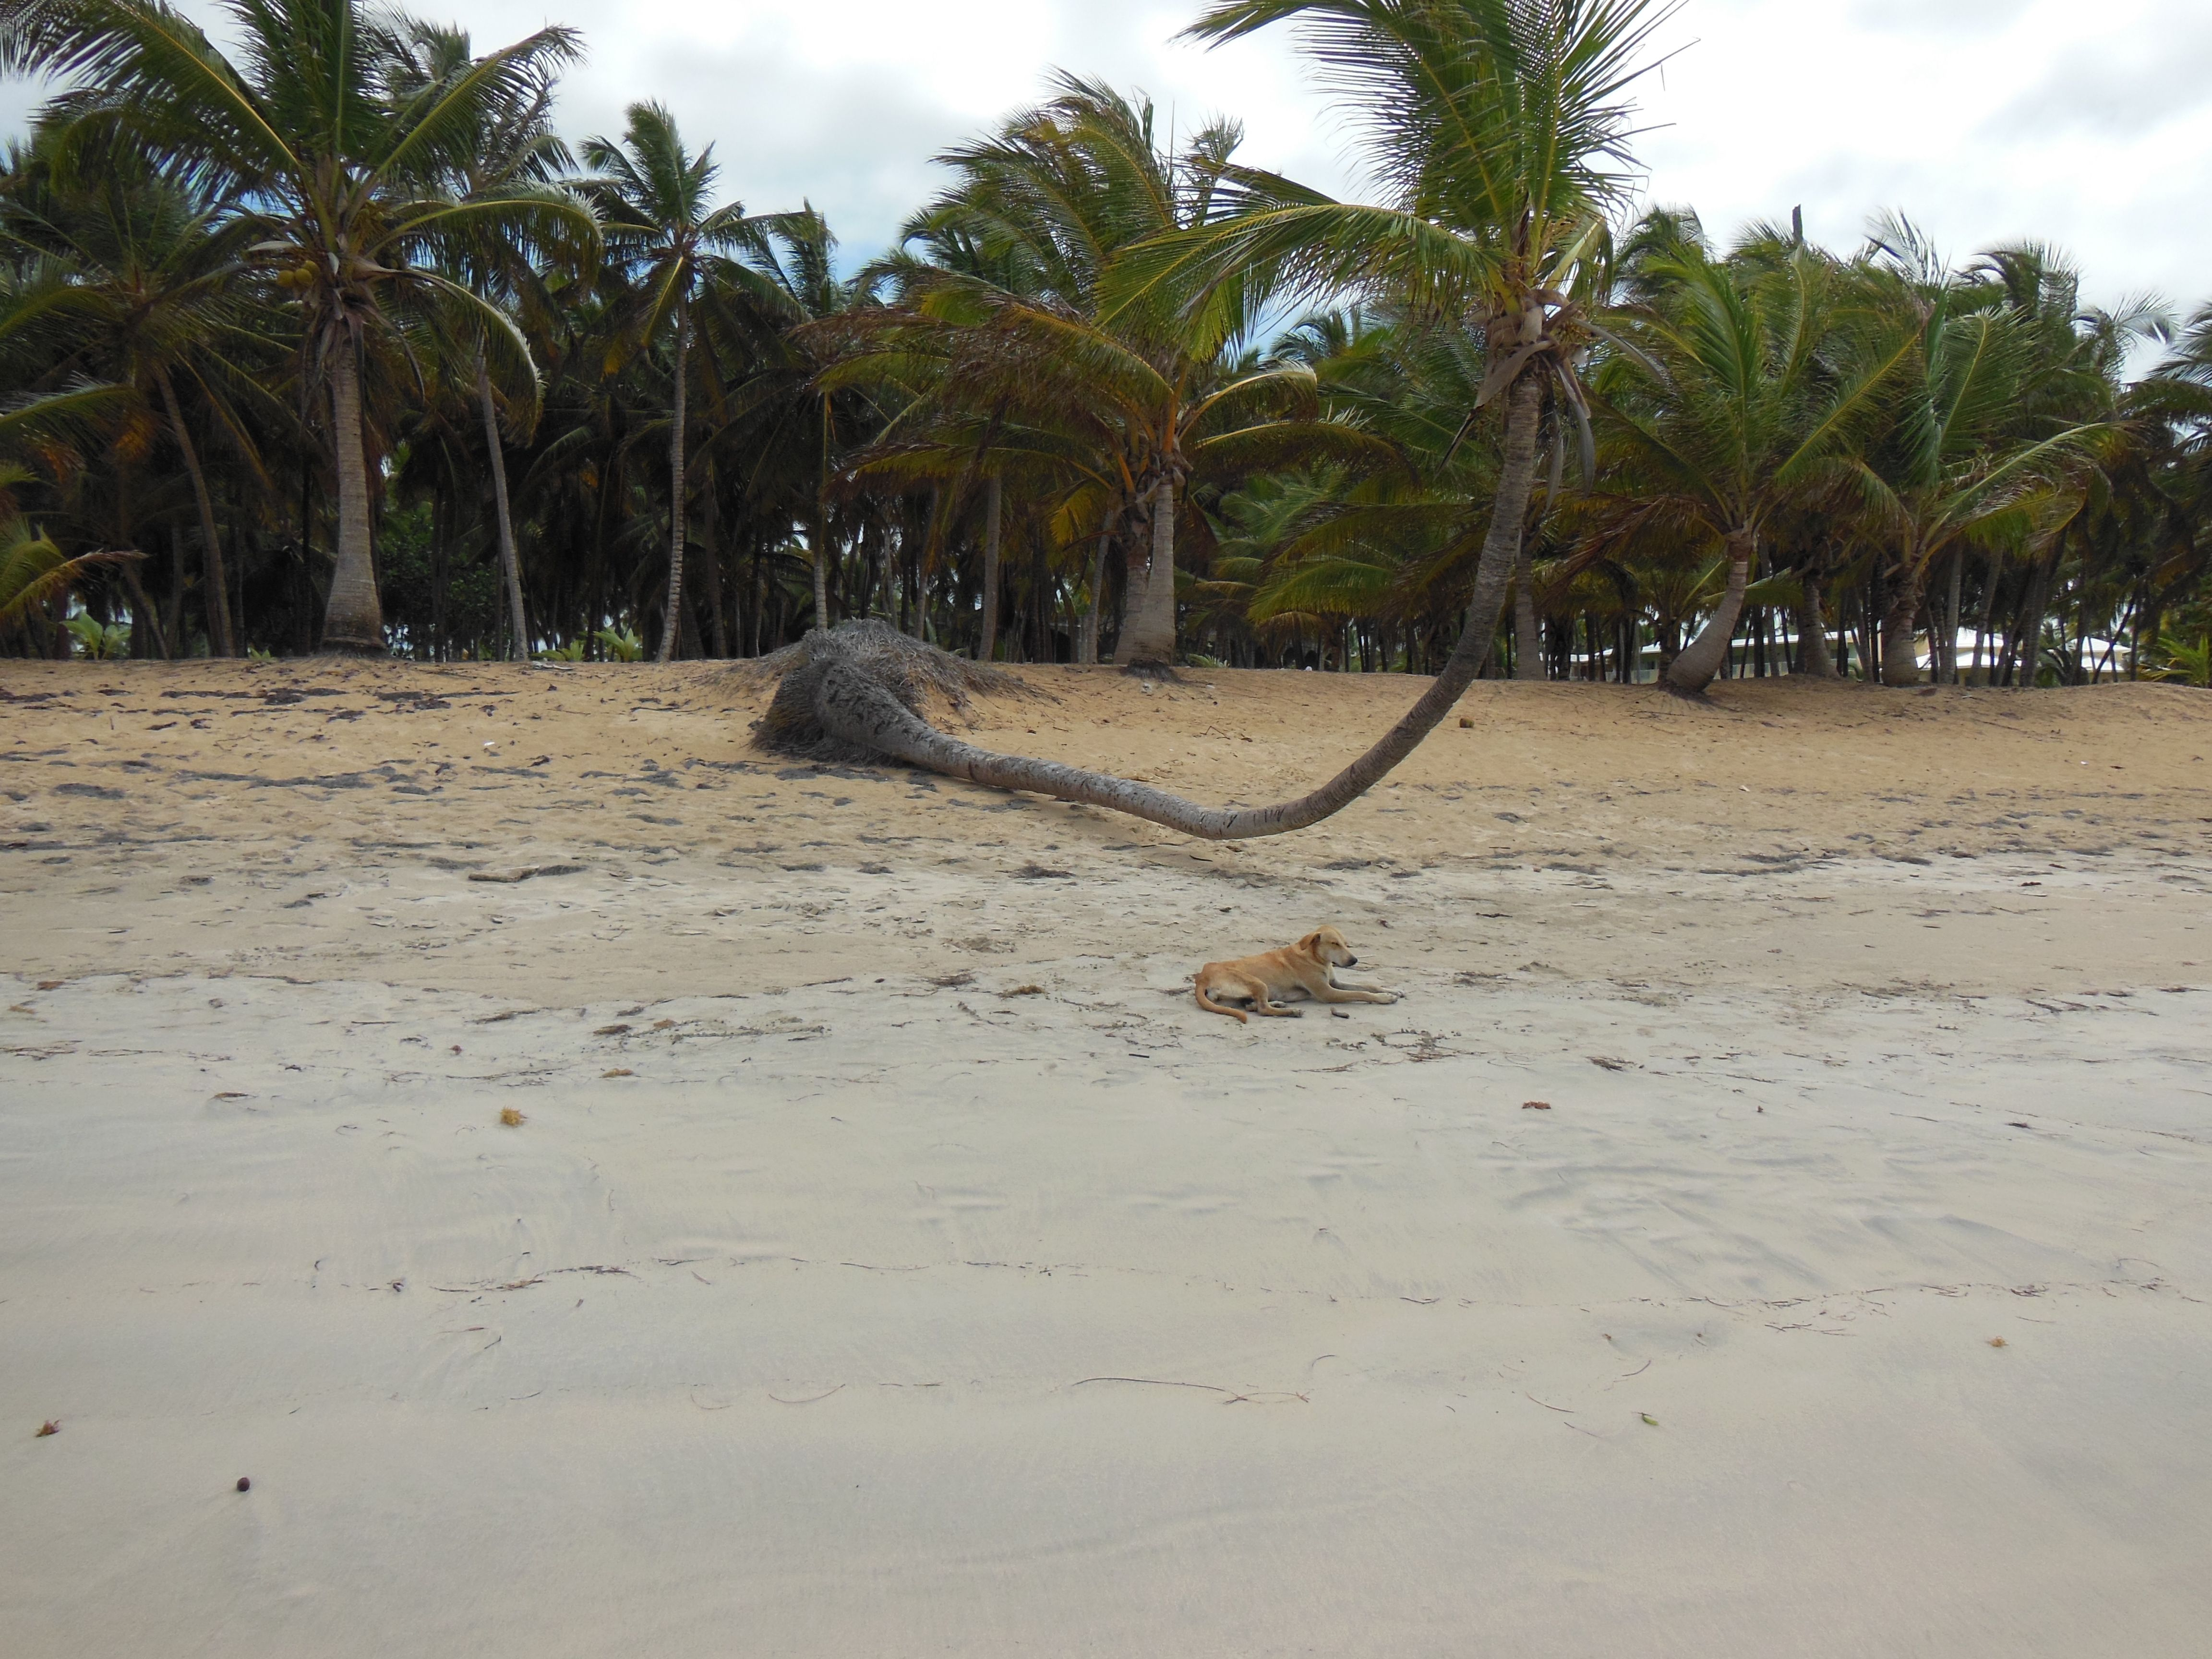 Chilling on the beach in the Dominican...